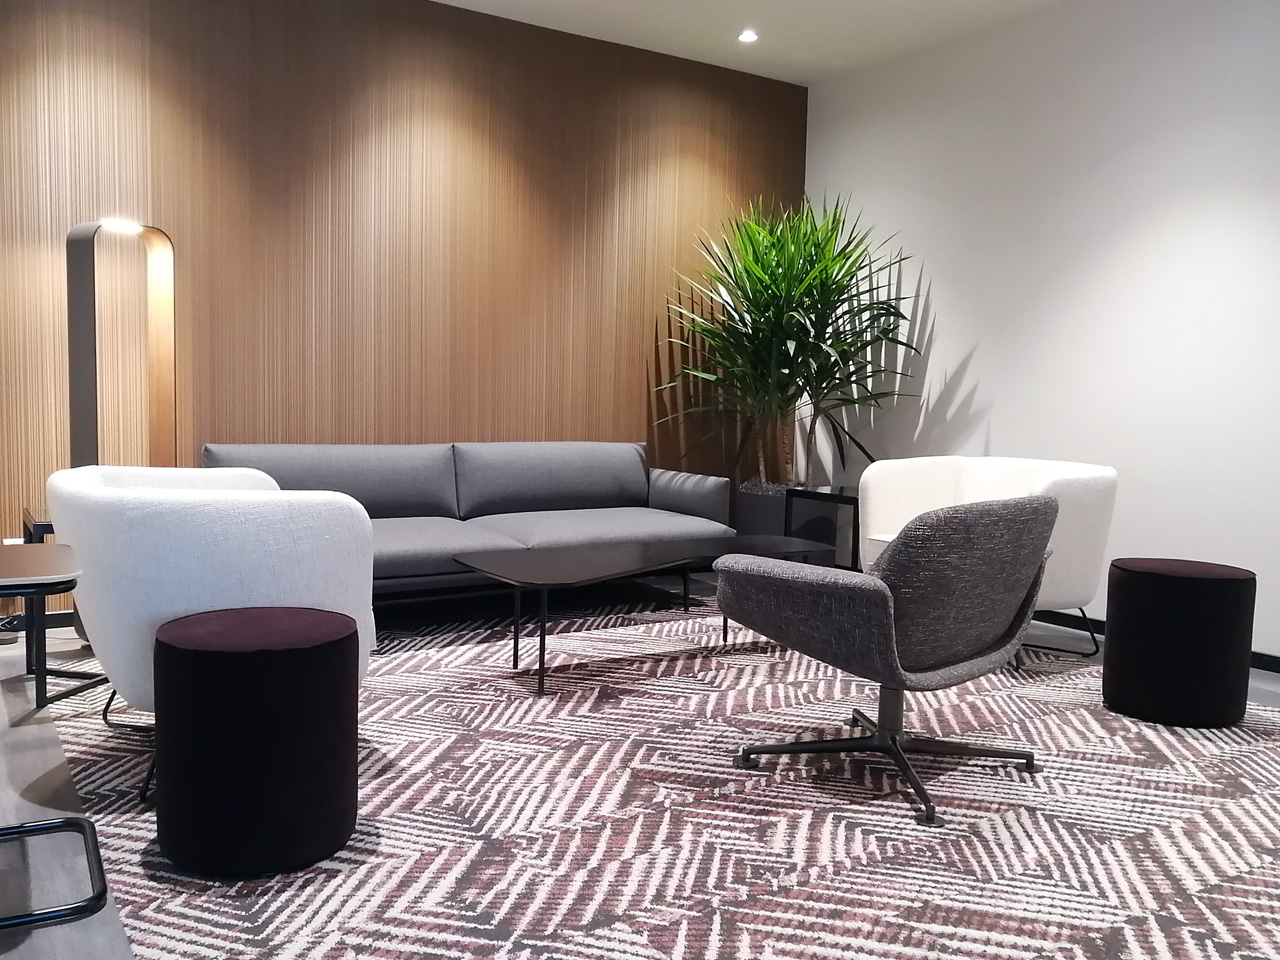 Biophilic design offers this reception area a calming atmosphere.